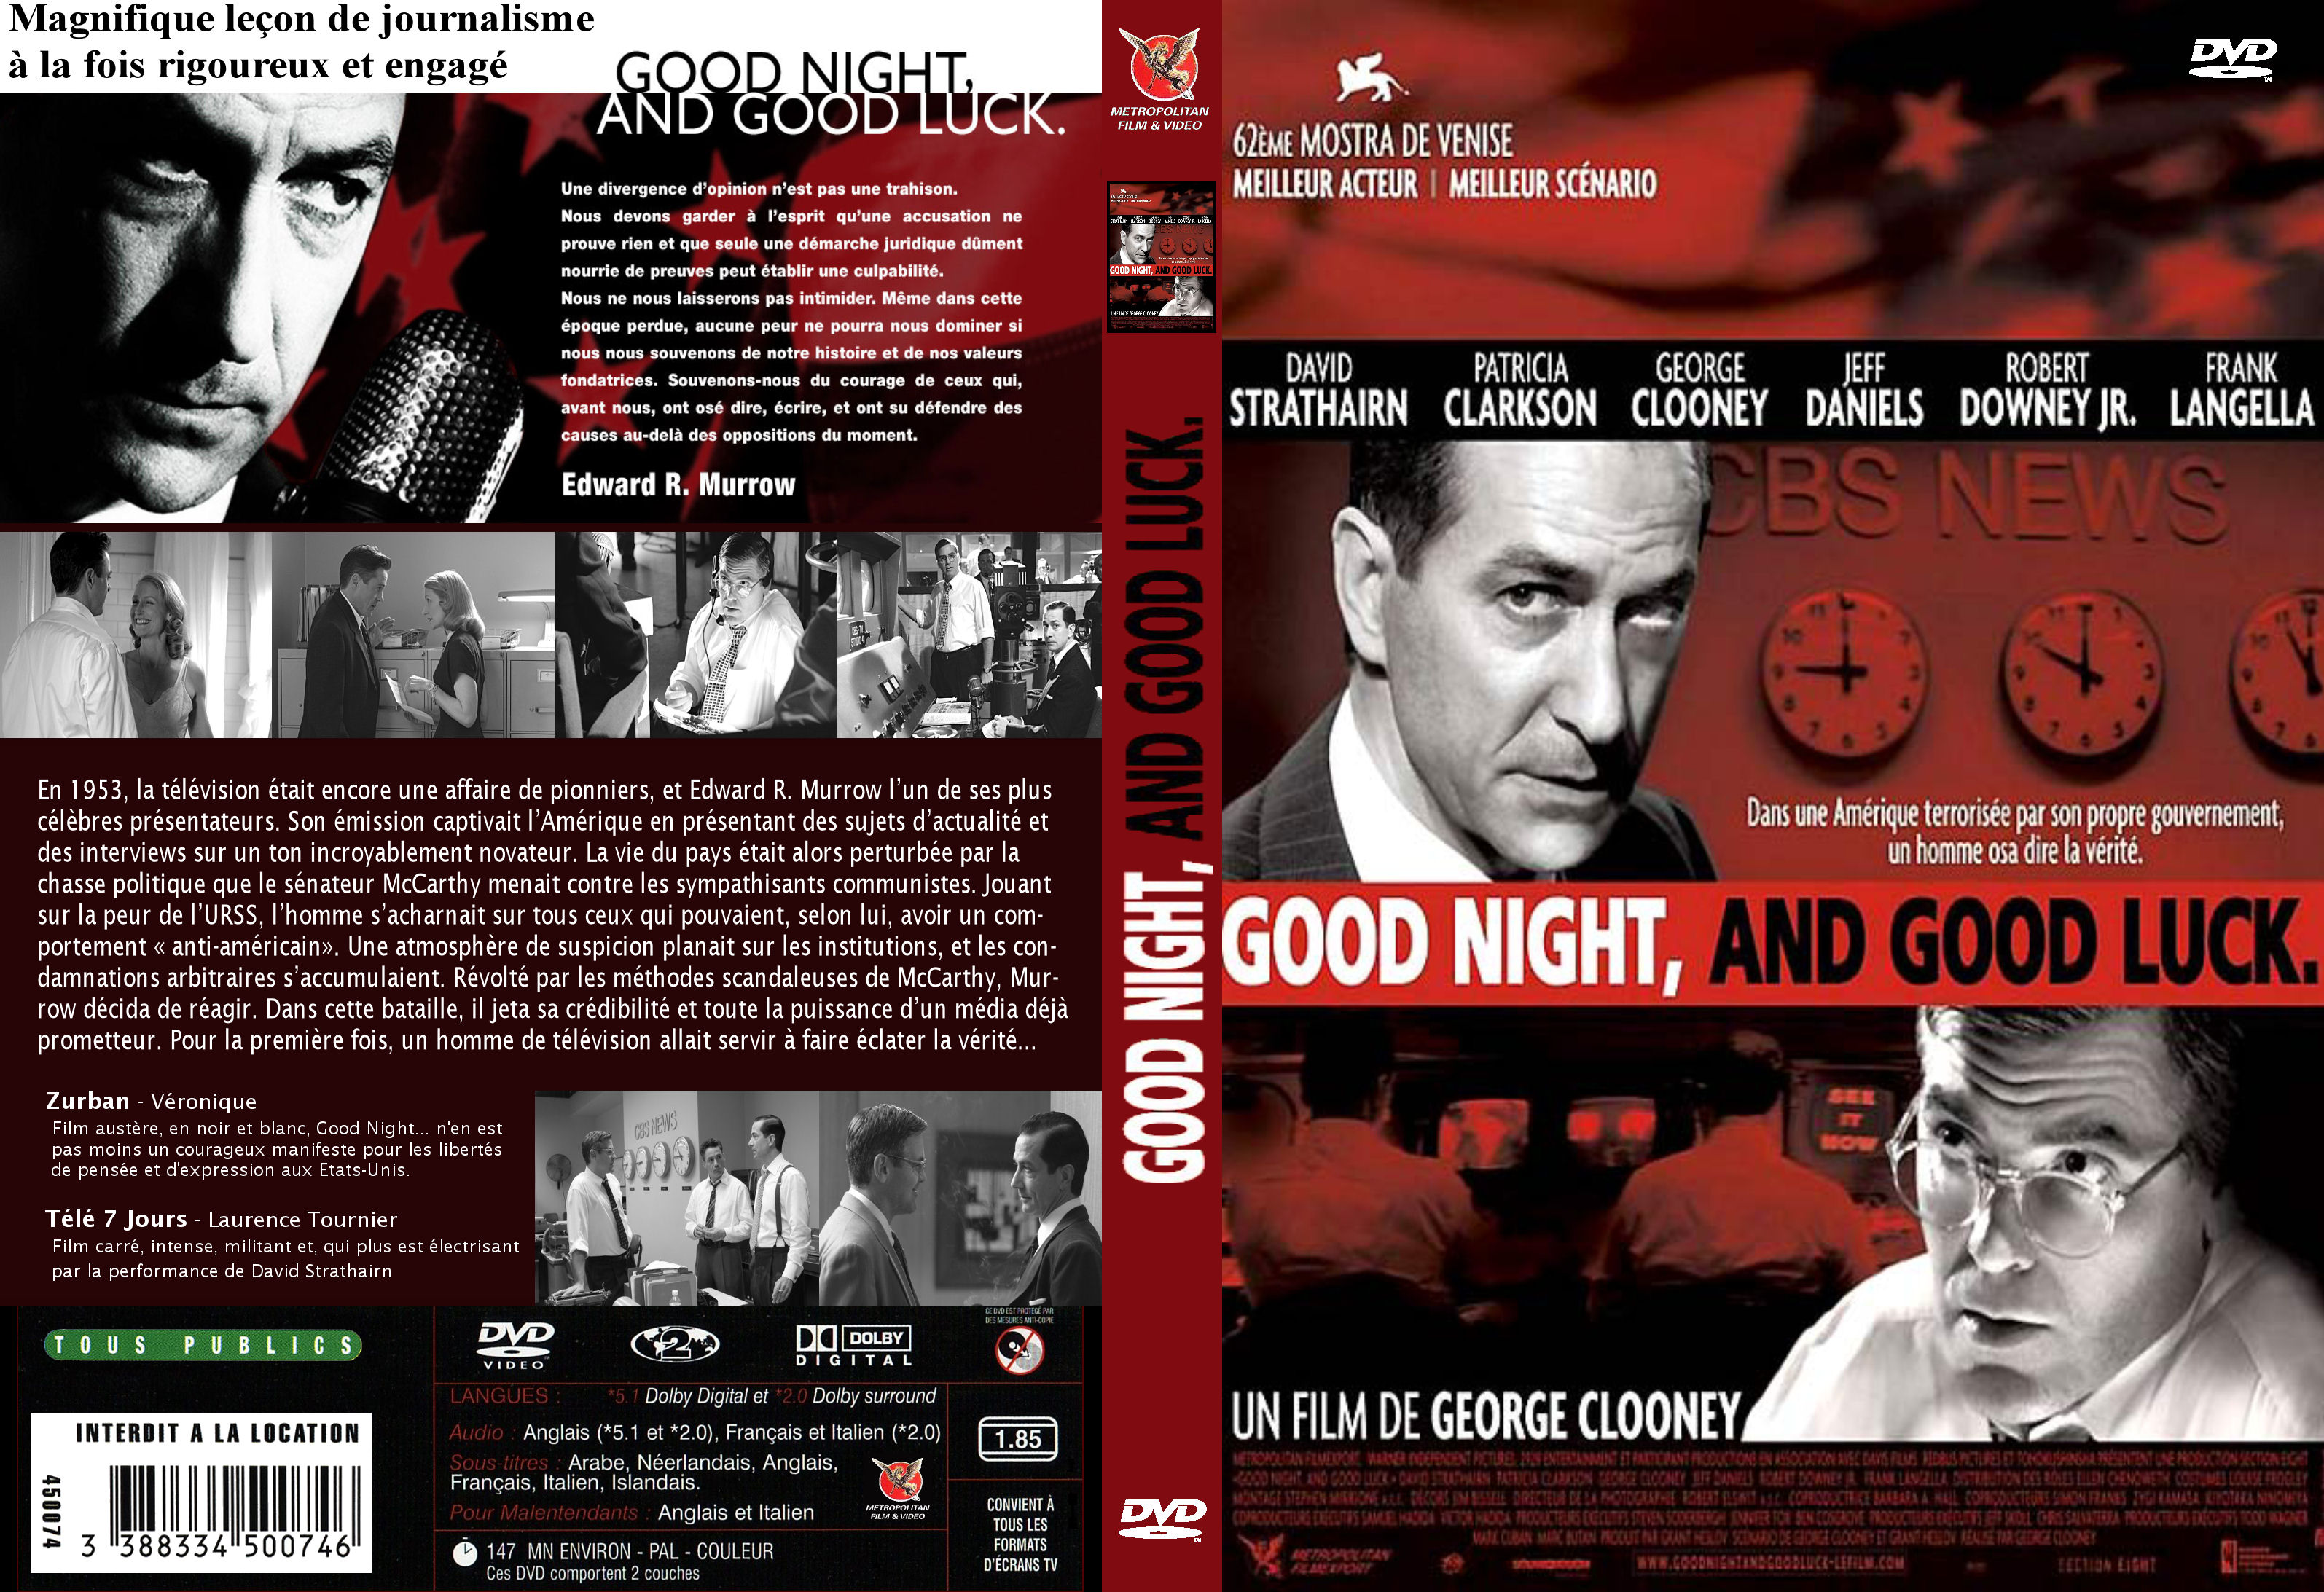 edward murrow as a symbol of broadcast journalism in good night and good luck a film by george cloon George clooney's second directorial effort good night, and good luck depicts the attempts by legendary broadcast journalist edward r murrow to take down us senator joseph mccarthy in the 1950s.